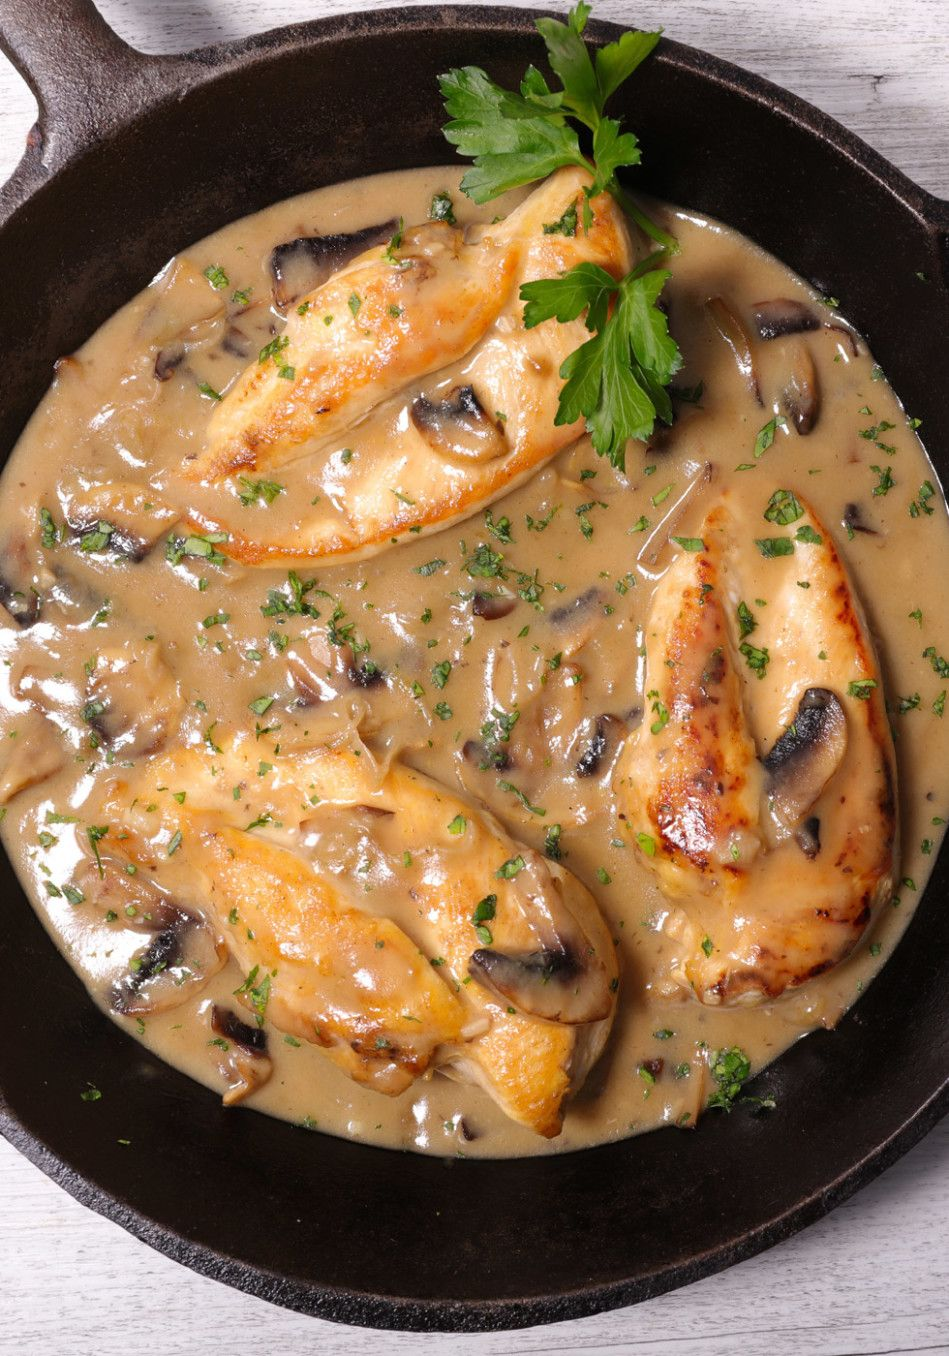 Chicken Cream And Mushrooms Occur Again And Again As It Is One Of The Great Combinations The Chicken Is Roasted Poultry Recipes Chicken Recipes Recipes